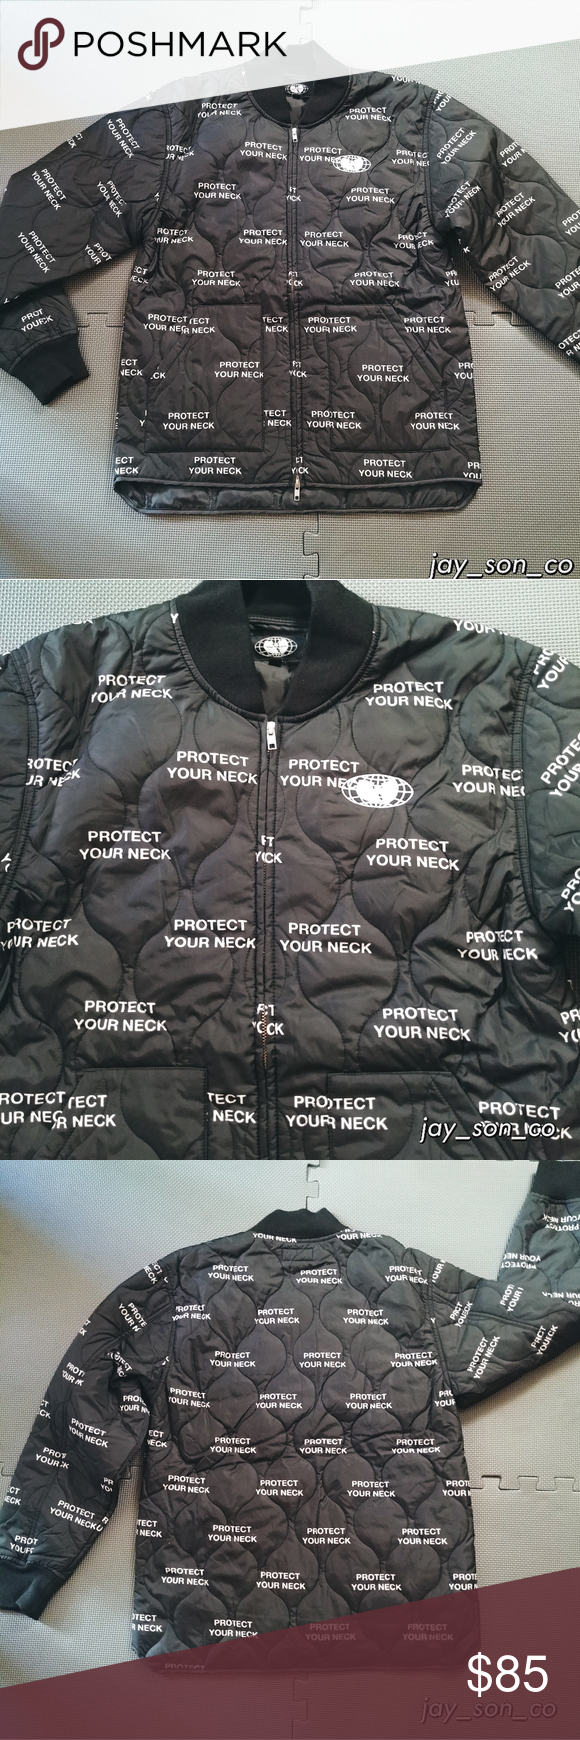 Wu Tang Wear Bomber Protect Ya Neck All Over Print How To Wear Work Jackets Logo Color [ 1740 x 580 Pixel ]